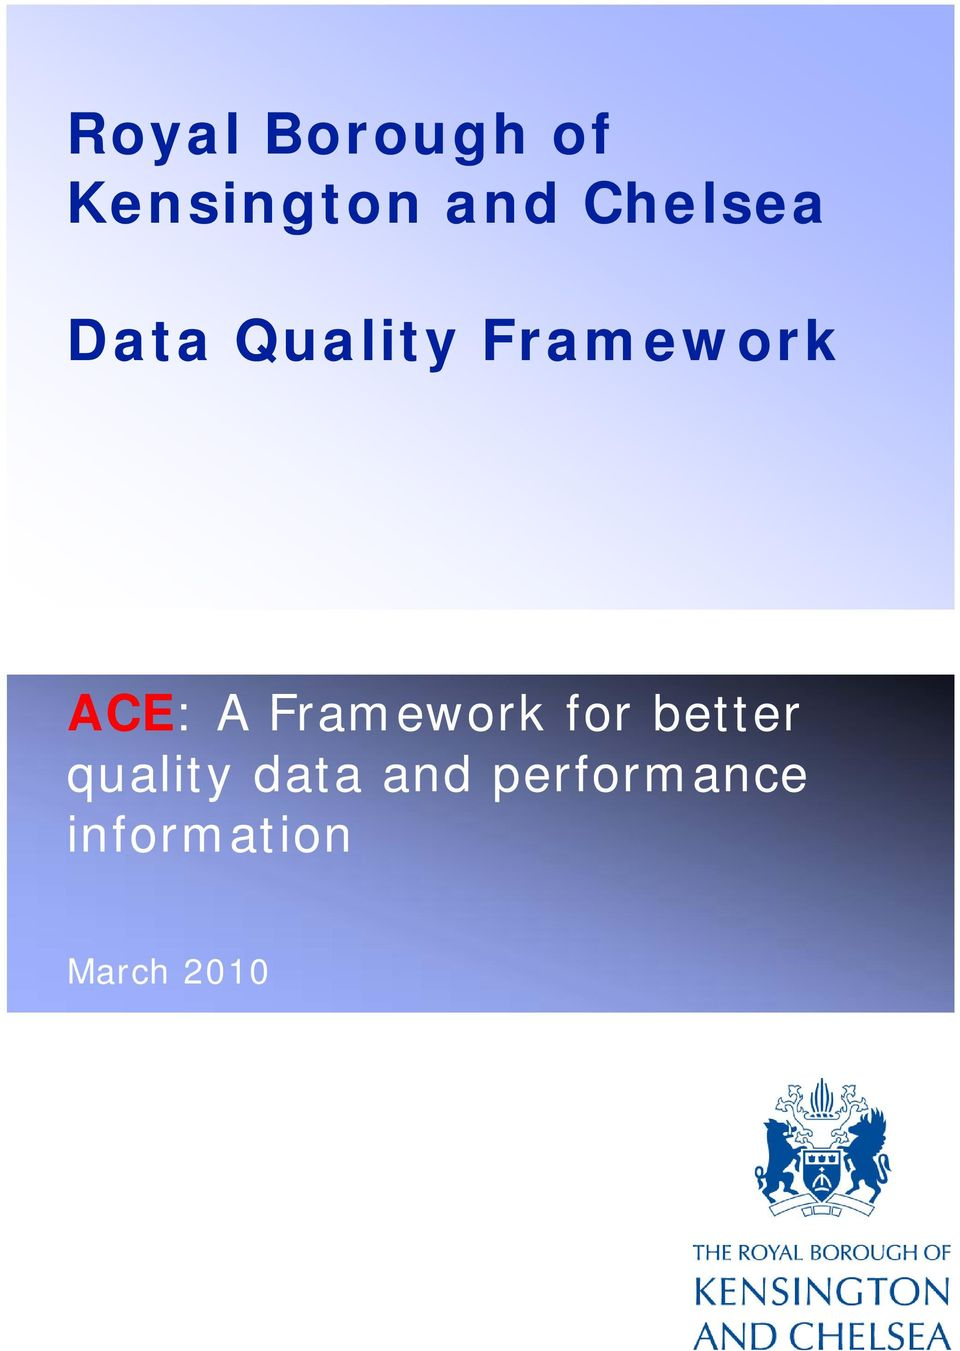 A Framework for better quality data